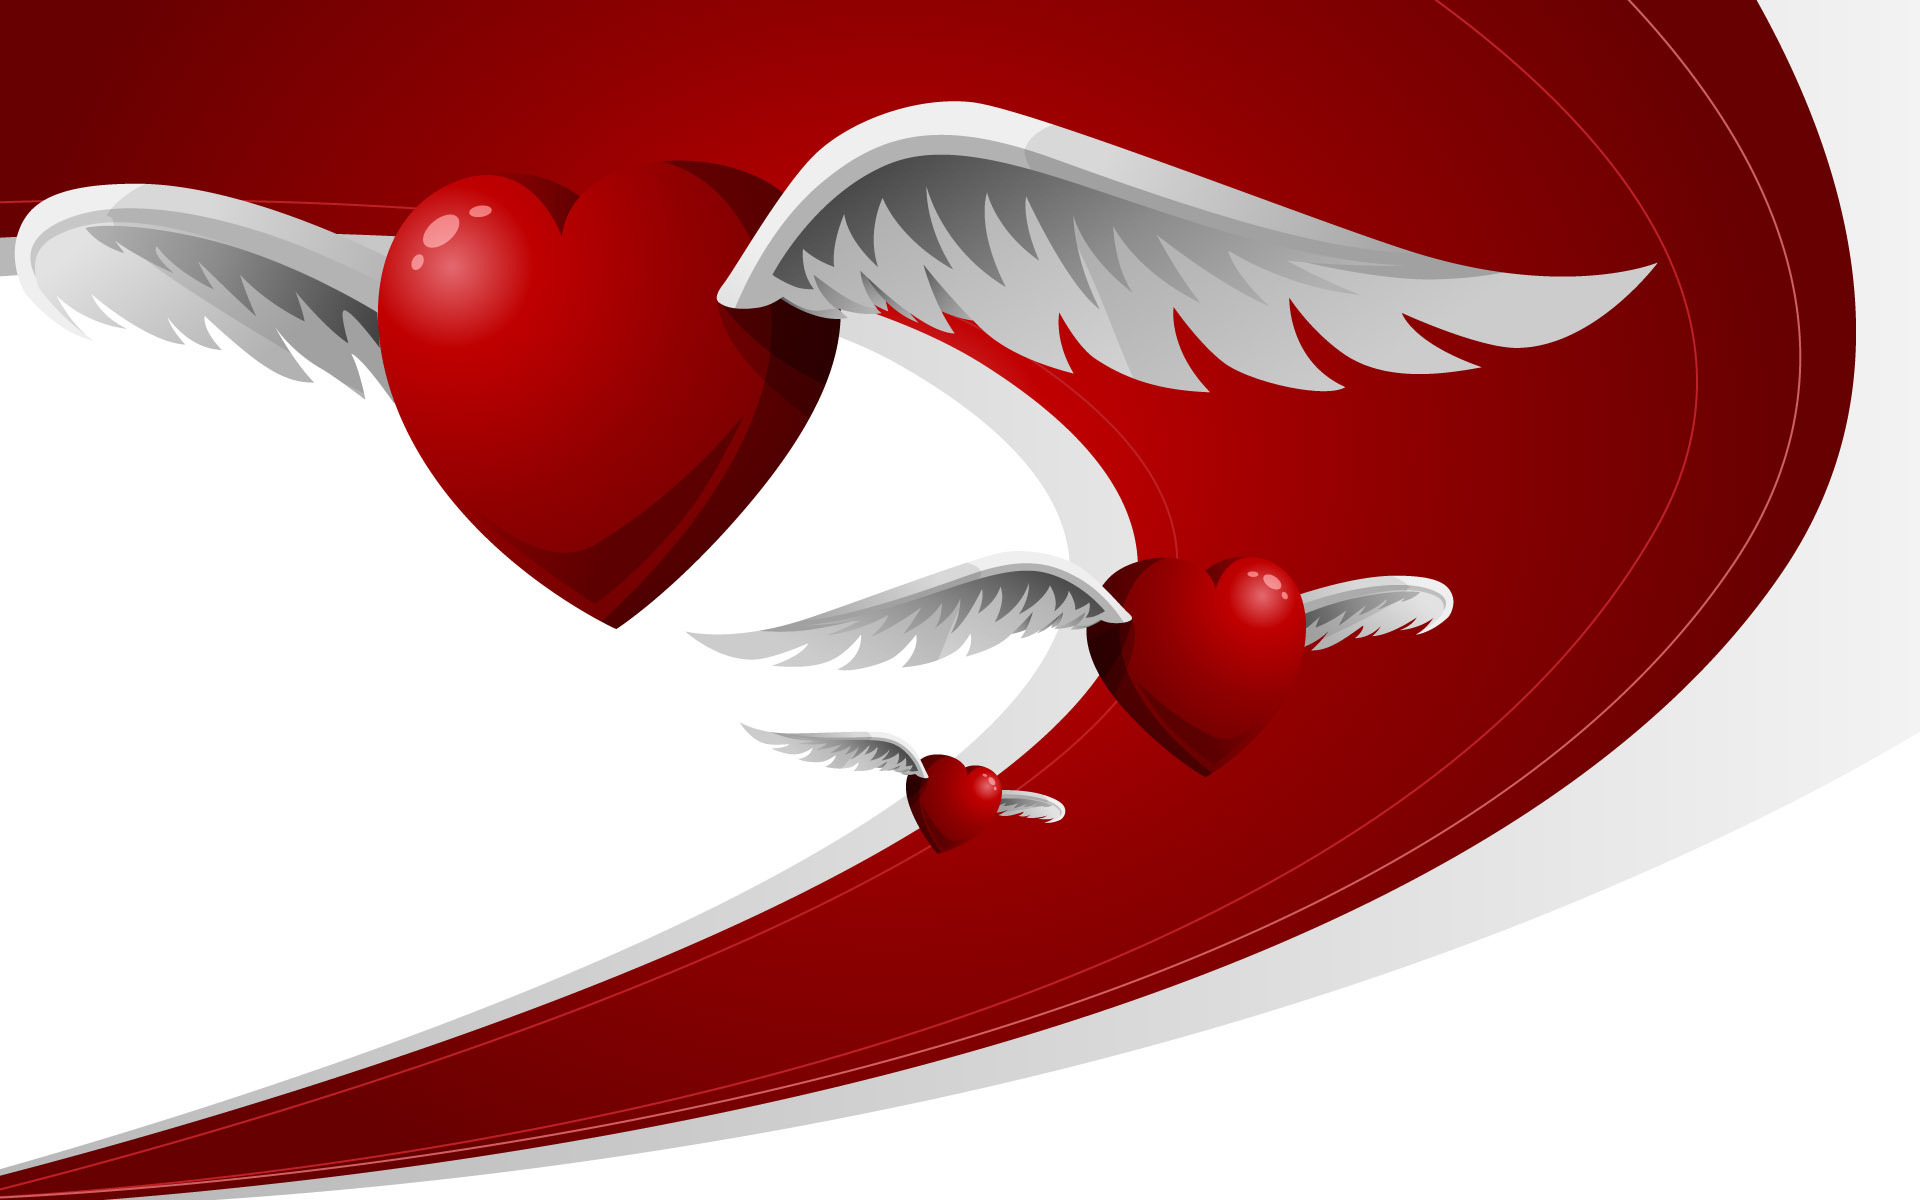 Flying Love Hearts 302.54 Kb